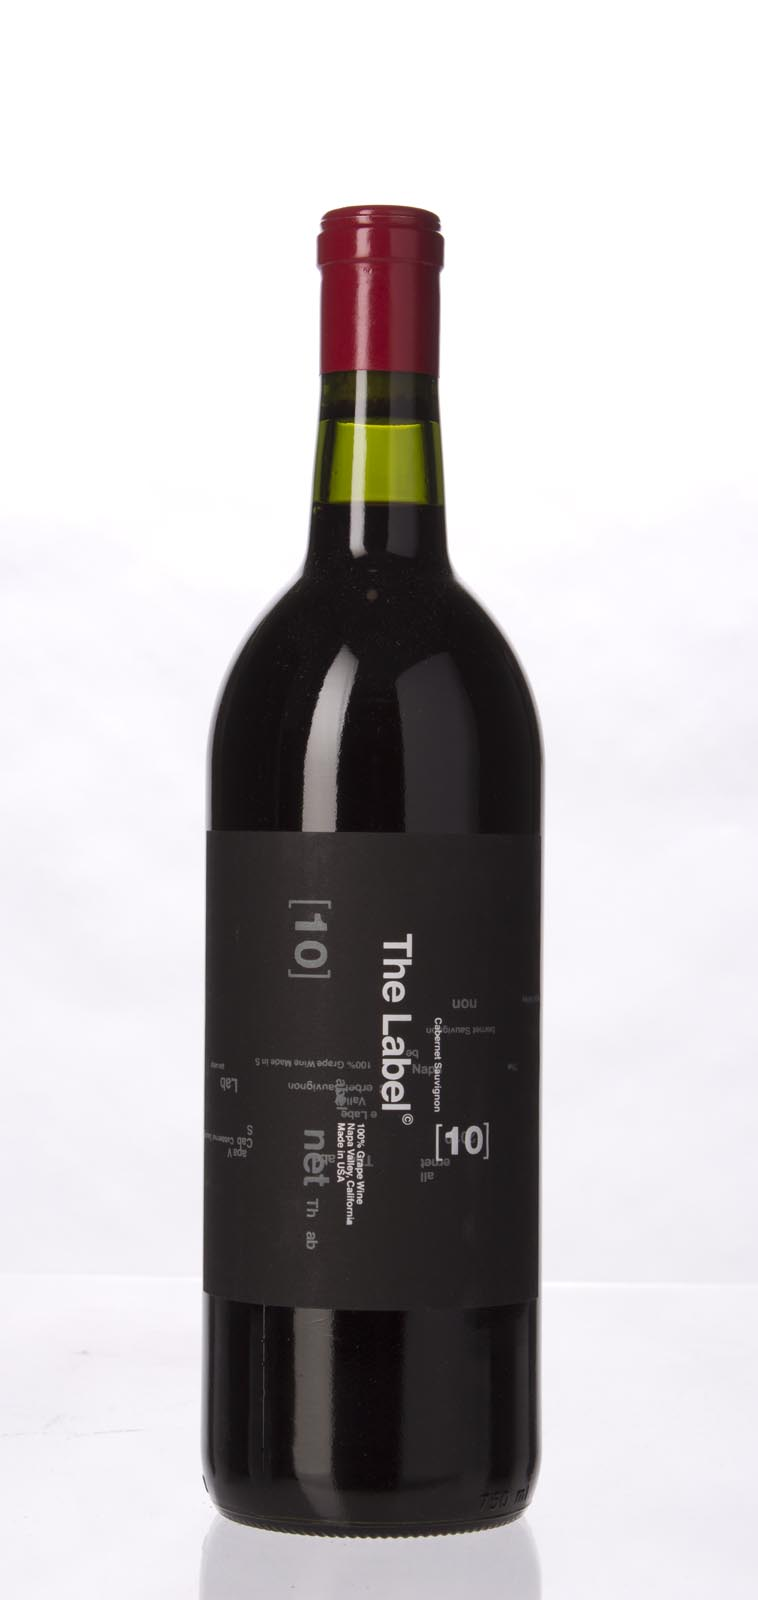 Turley Wine Cellars Cabernet Sauvignon The Label 2010, 750ml () from The BPW - Merchants of rare and fine wines.